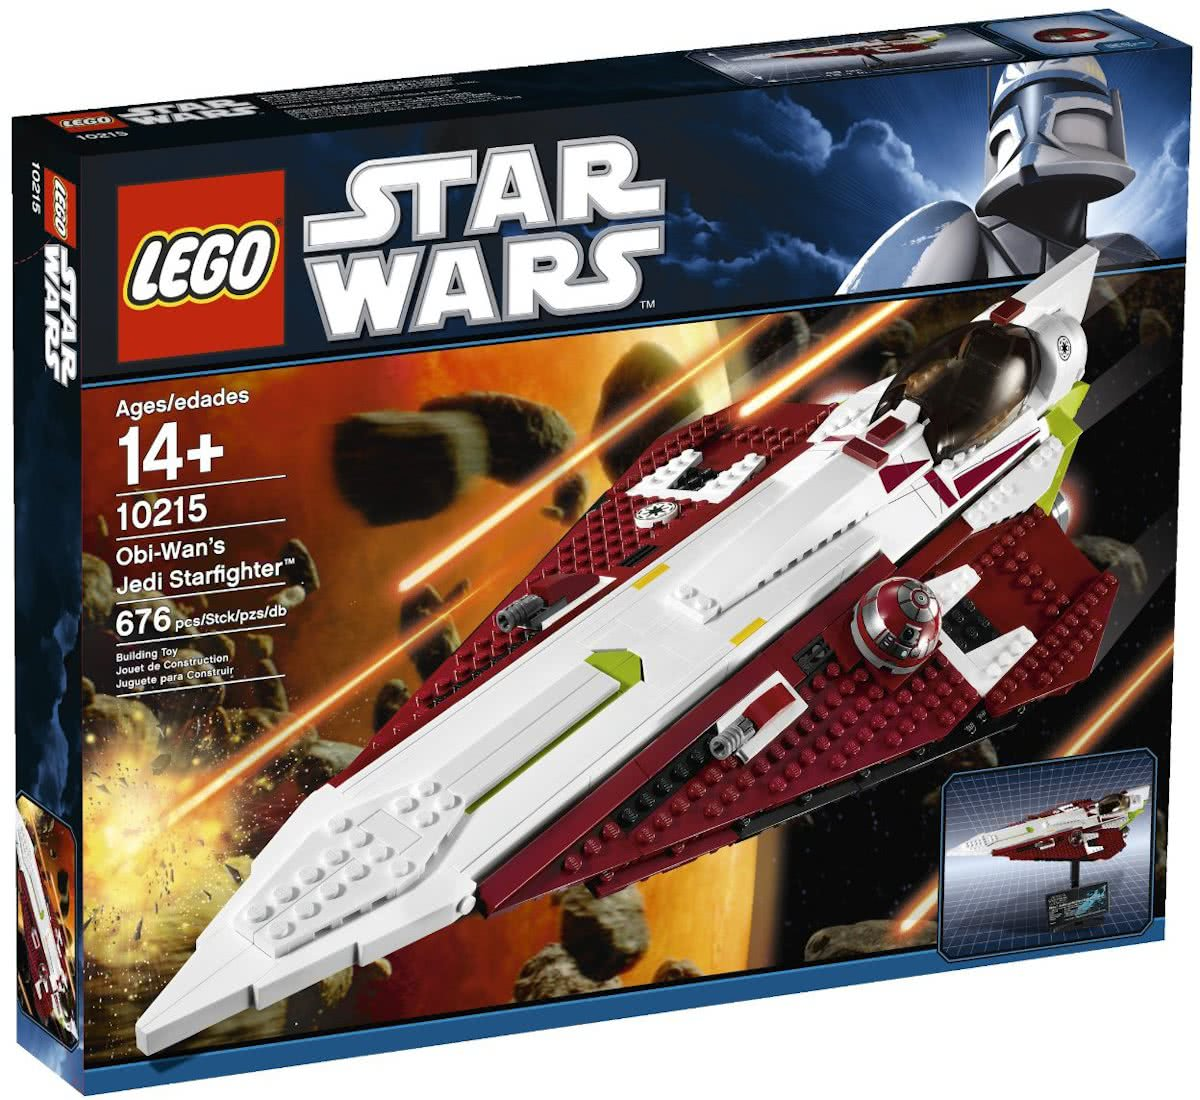 LEGO Star Wars Obi Wans Jedi Starfighter - 10215